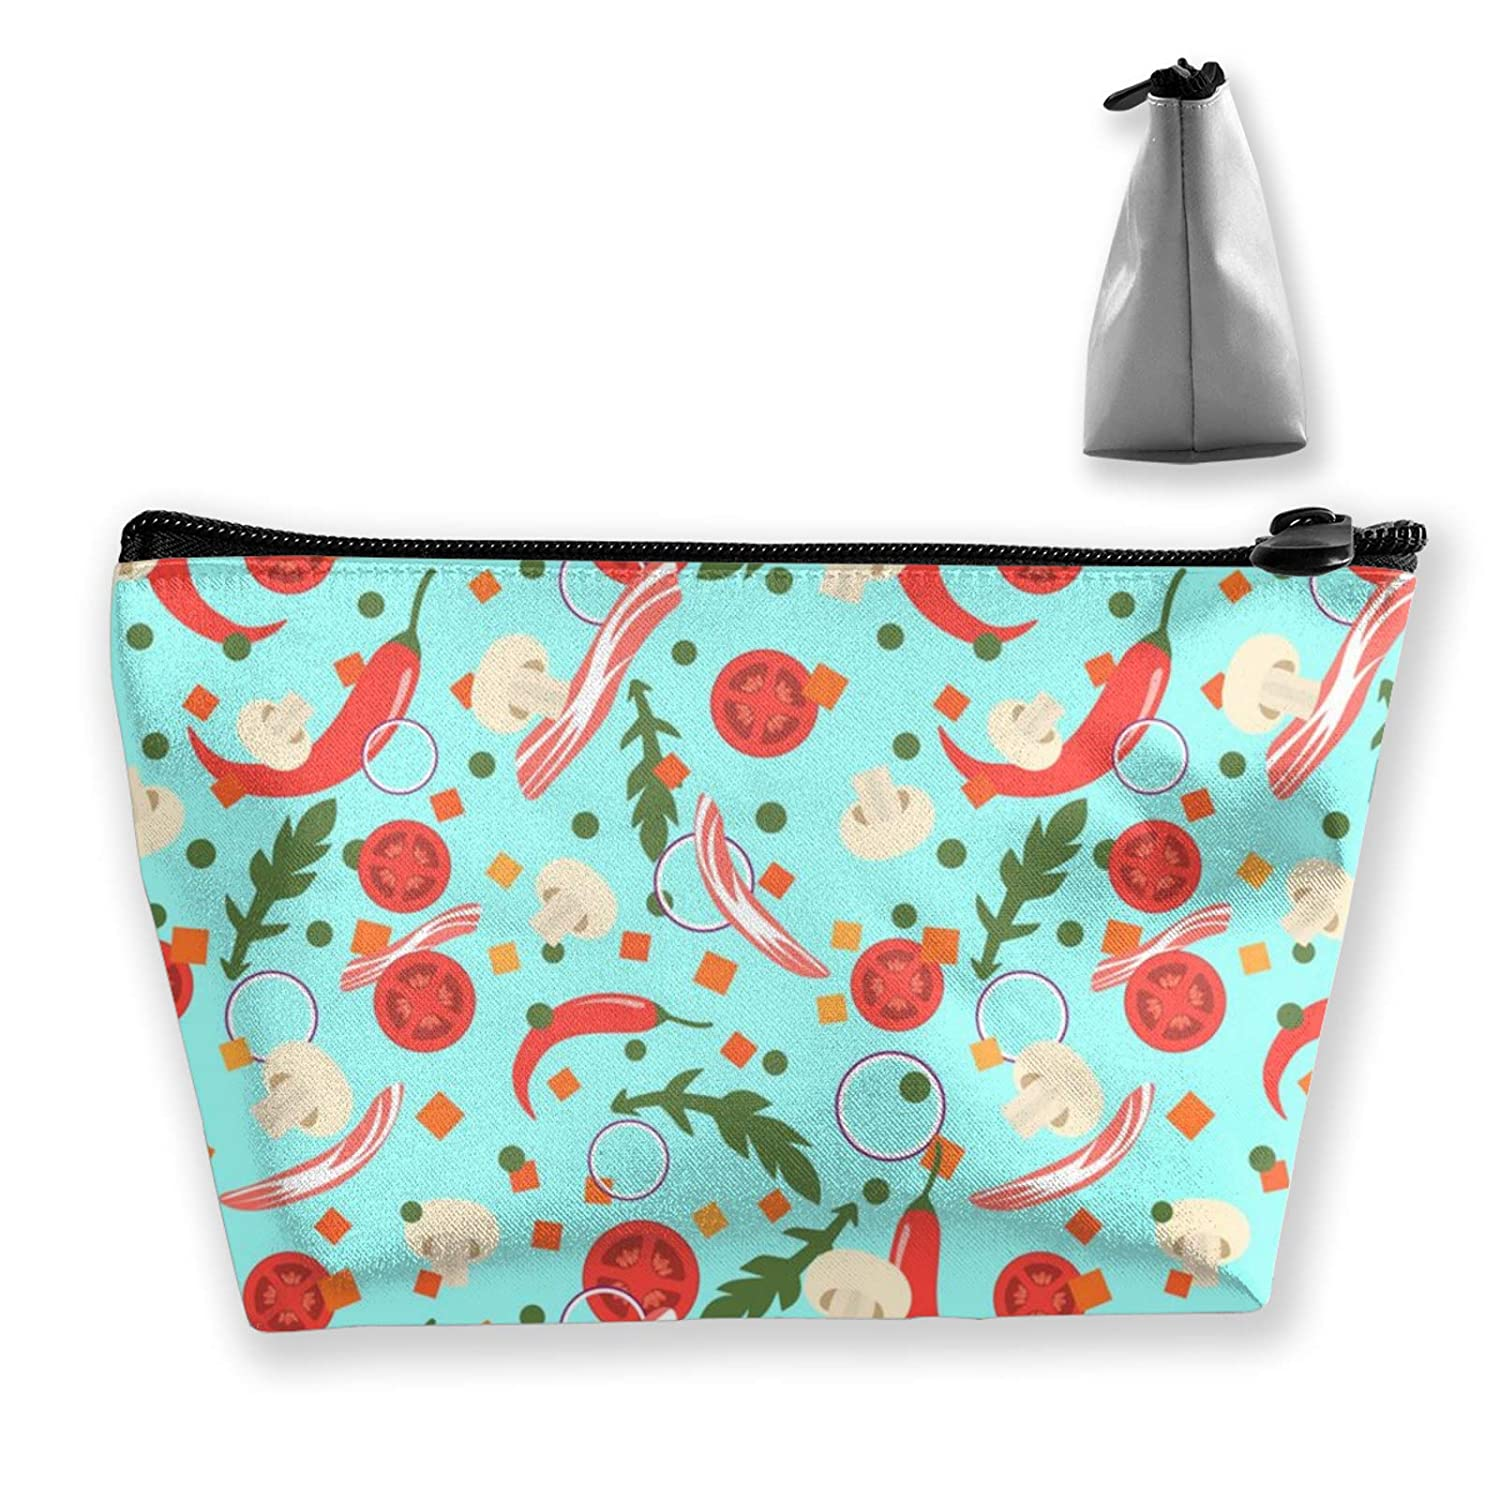 Lazy Makeup Case Vegetables Vegan Food Fruit Floral (16) Tote Bag Travel Makeup Train Case Holder Large Capacity Carry On Bag Luggage Pouch Makeup Pouch] For Women